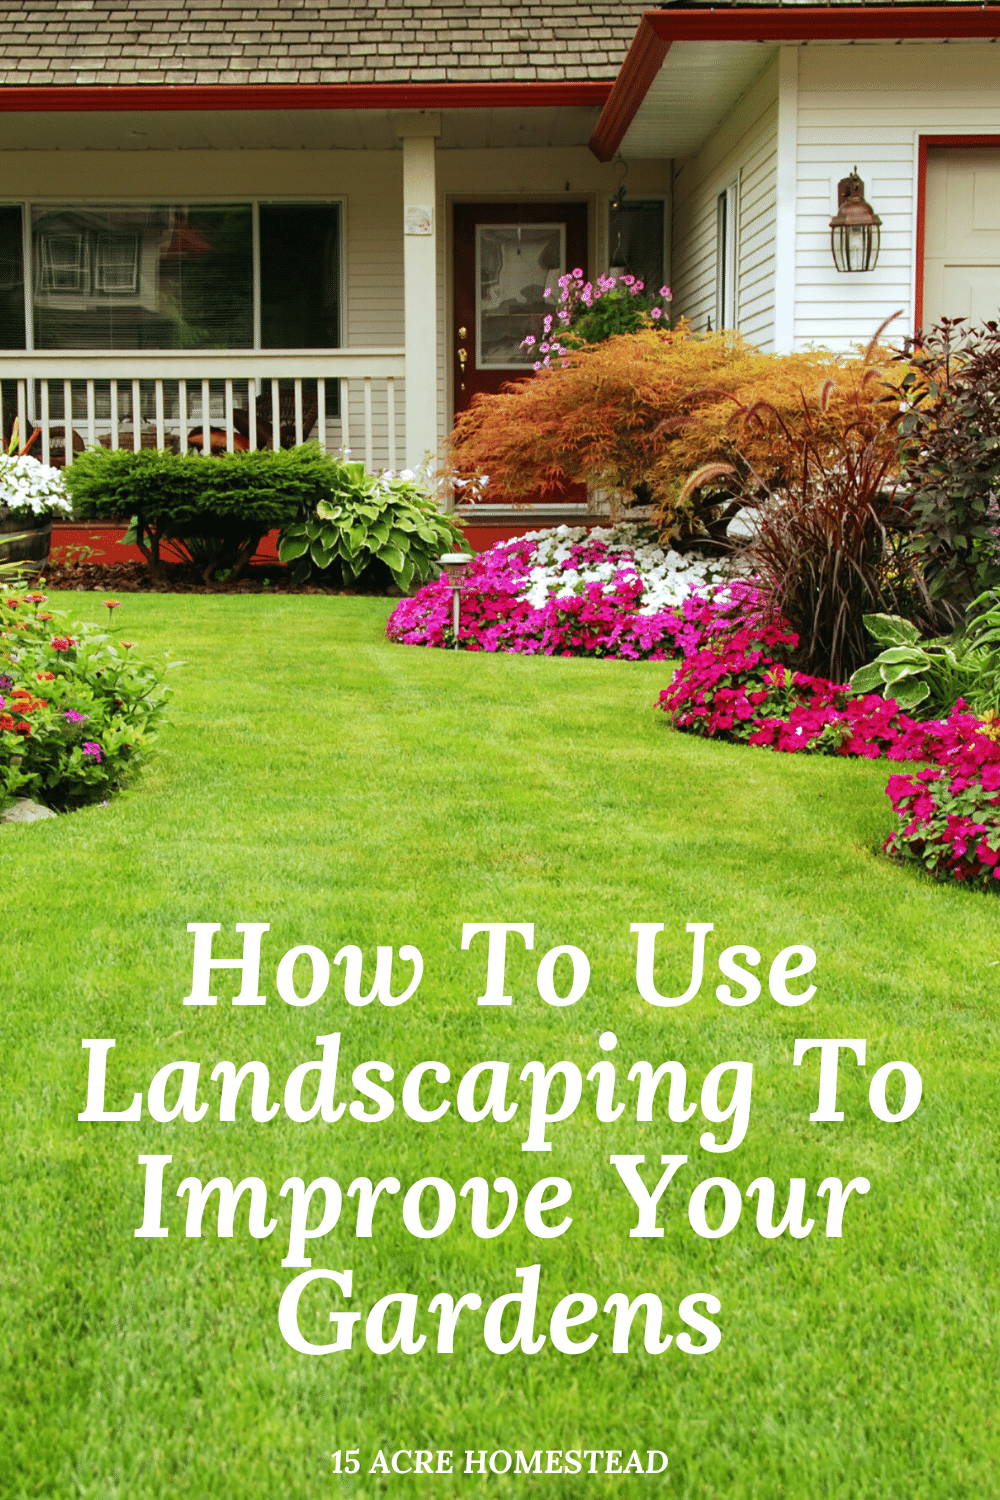 Use these simple tips to start the gardening season with a new look for your gardens.